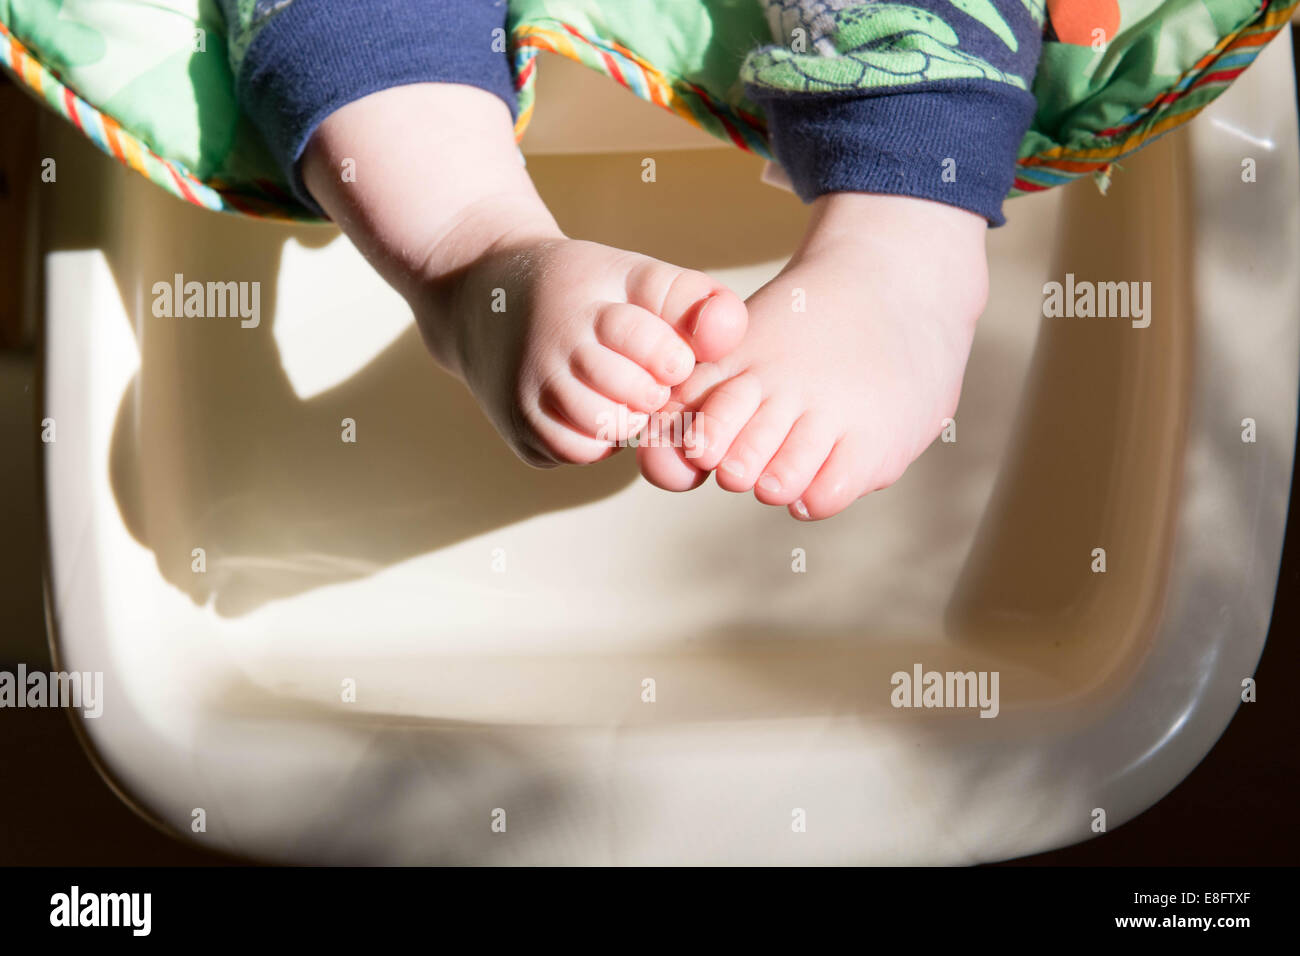 Close-up of a boy's feet - Stock Image